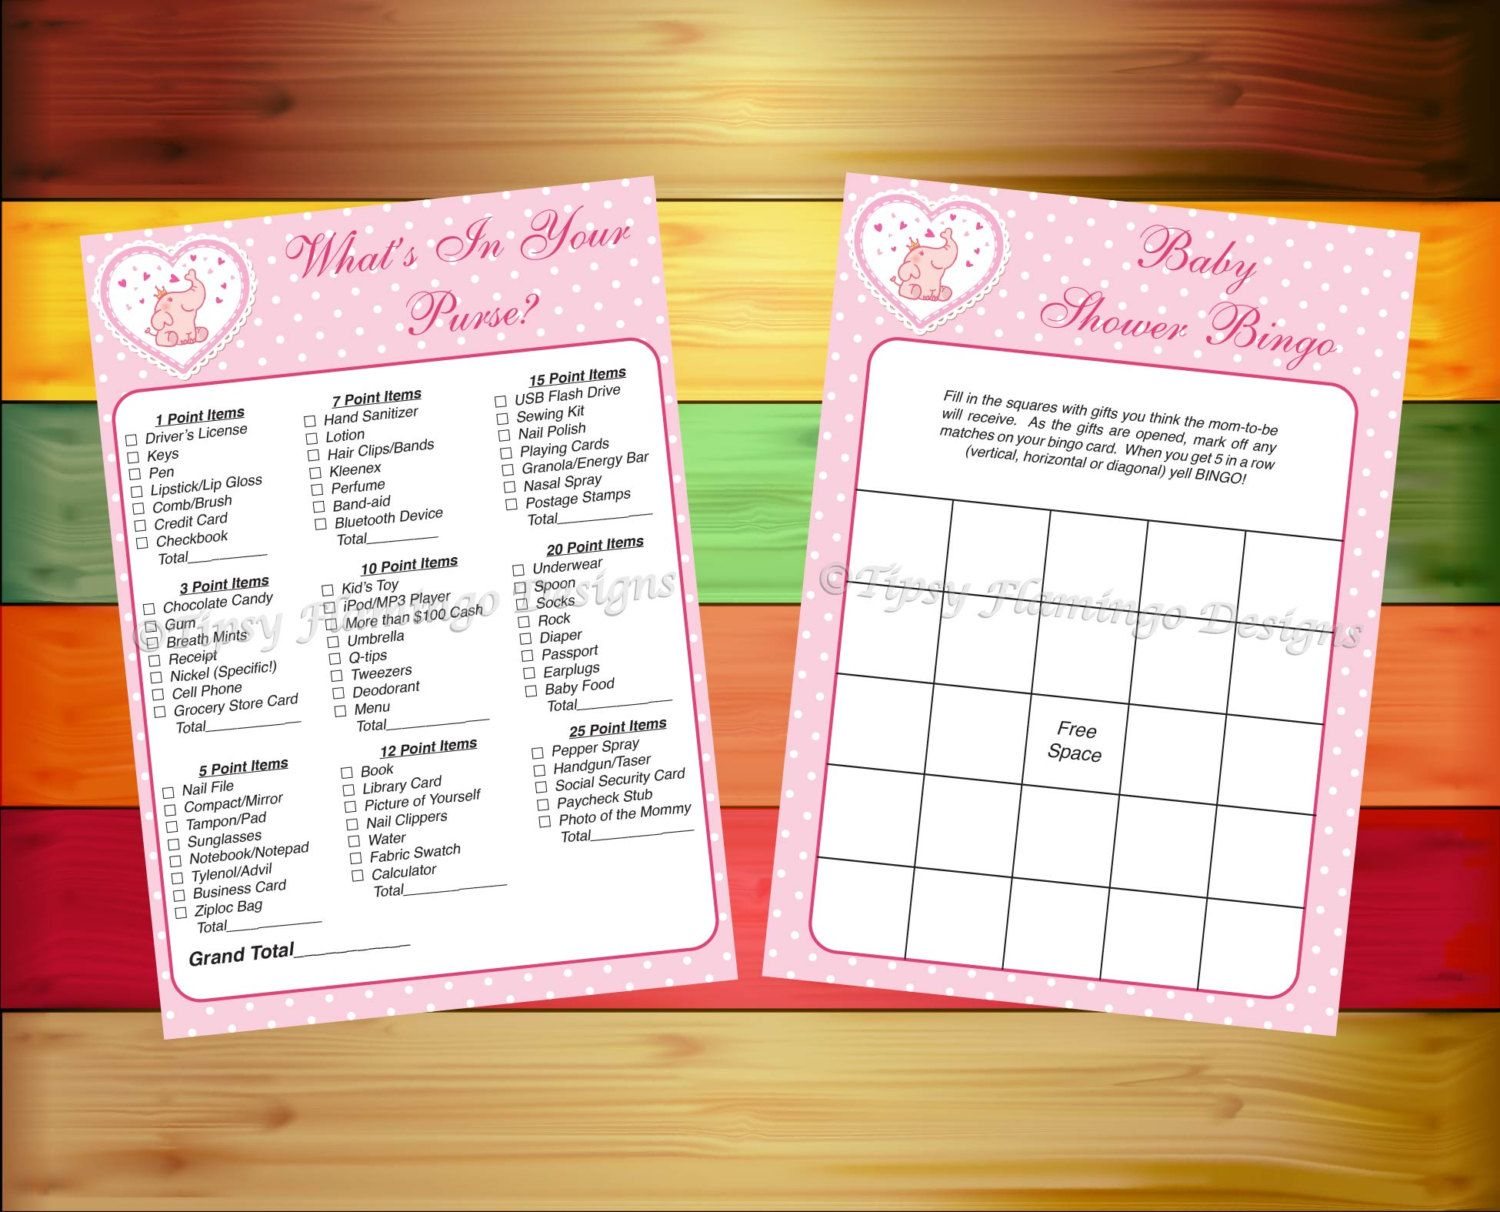 Baby Shower Games What 39 S In Your Purse Bingo Two Pack Shower Games Baby Party Supplies Pink Prin Baby Shower Games Shower Games Whats In Your Purse